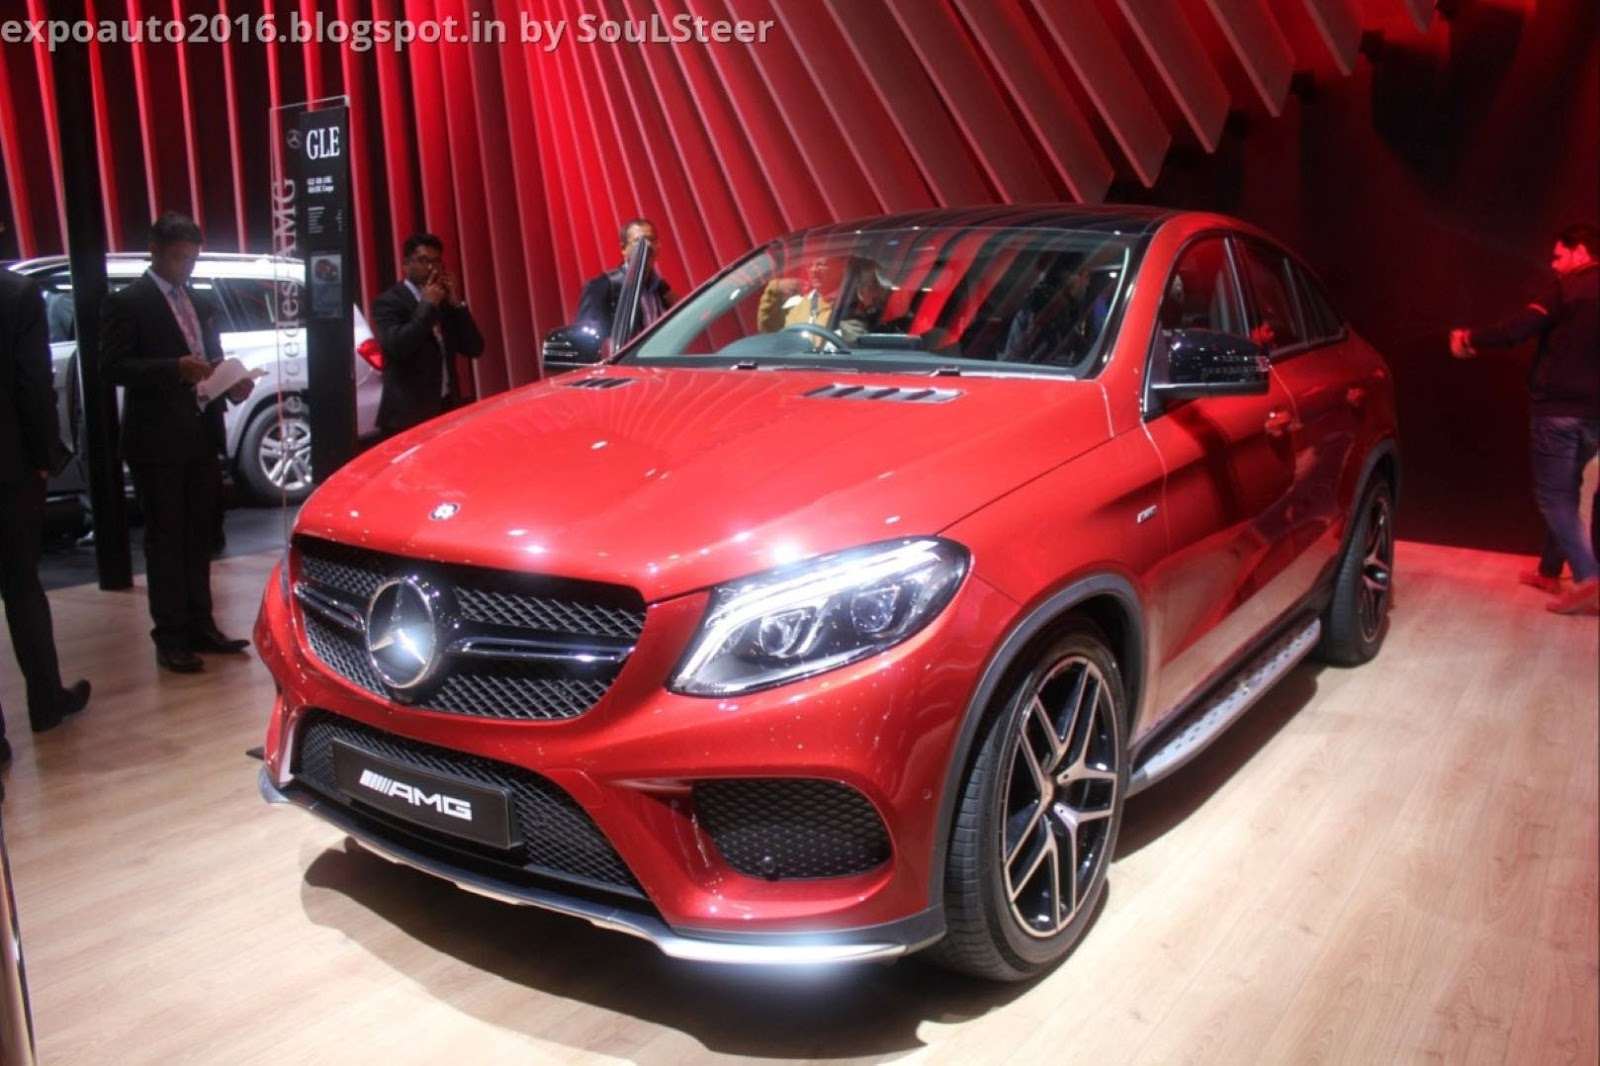 Auto expo 2016 by soulsteer mercedes benz gl 350 cdi for Mercedes benz gle 450